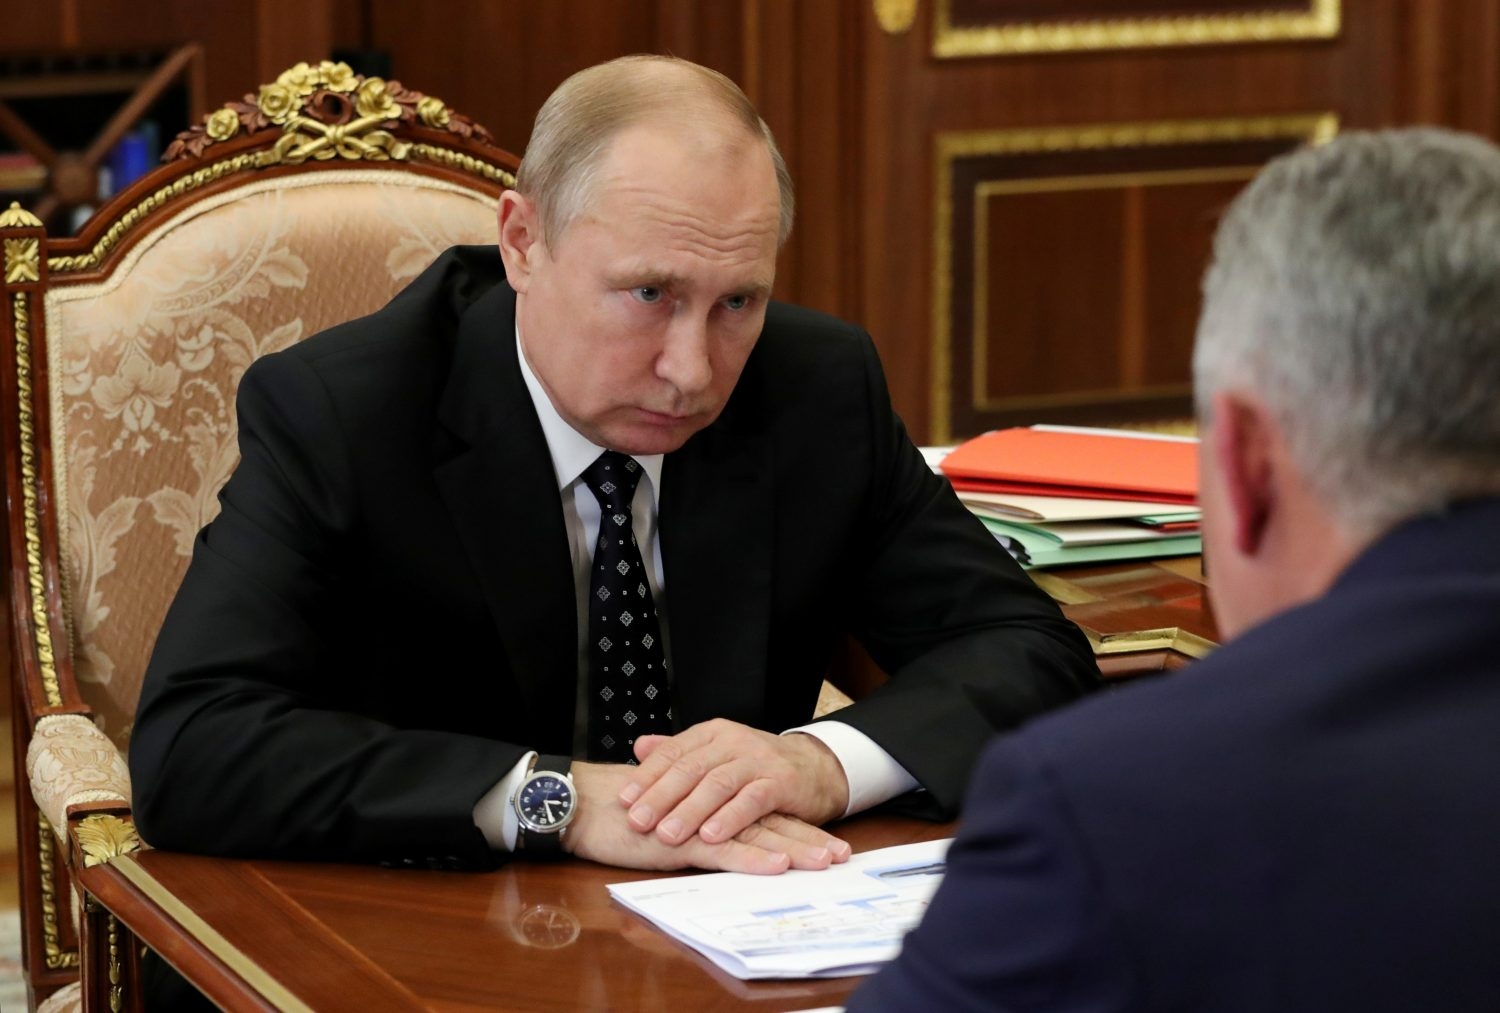 Russia's President Vladimir Putin meets with Defence Minister Sergei Shoigu to discuss a recent incident with a Russian deep-sea submersible, which caught fire in the area of the Barents Sea, in Moscow, Russia July 4, 2019. Sputnik/Mikhail Klimentyev/Kremlin via REUTERS